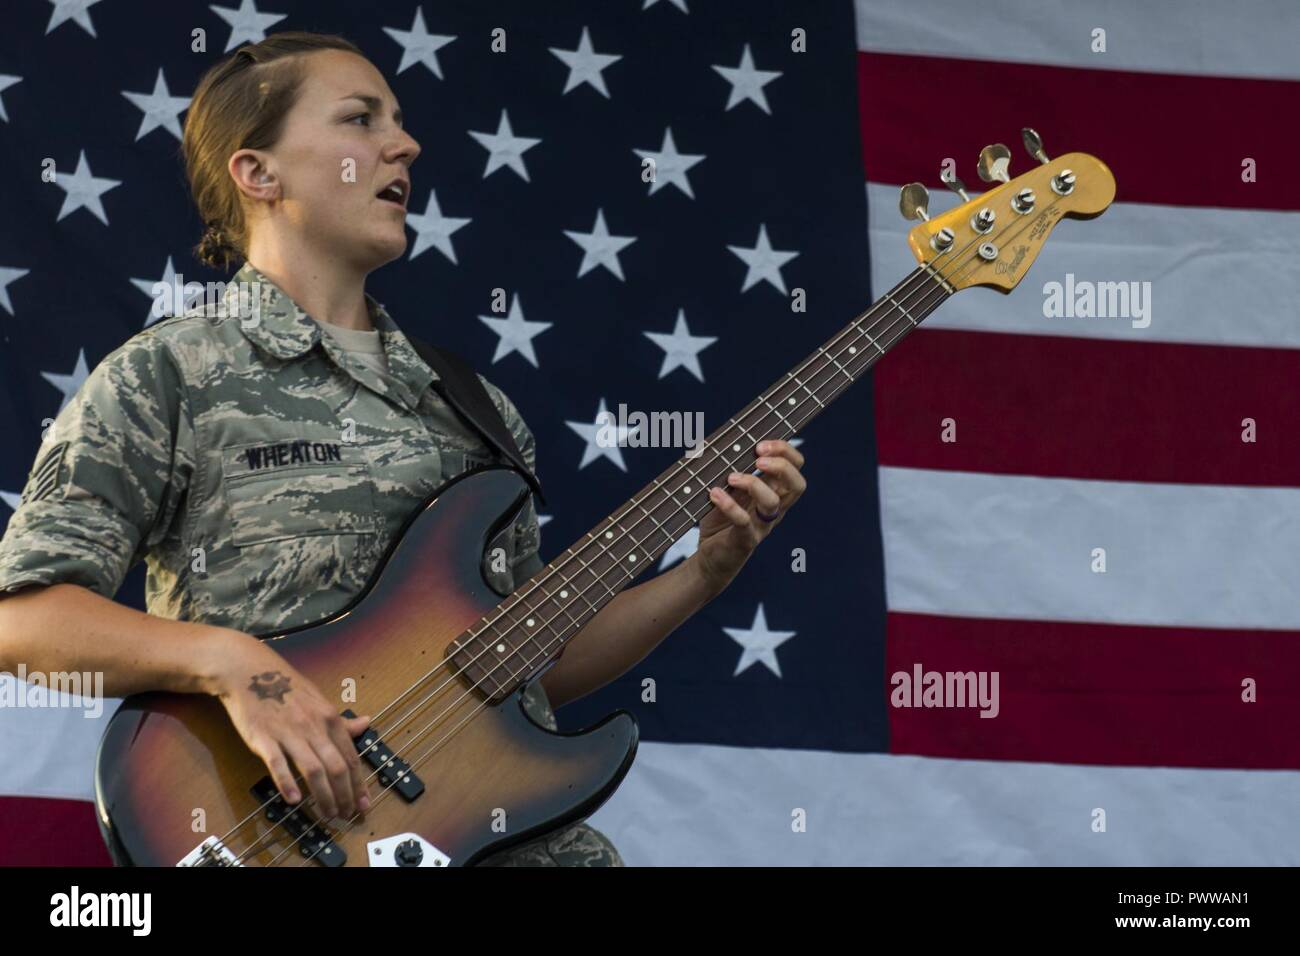 Staff Sgt. Emily Wheaton, Pacific Air Force Band member, plays a guitar during a concert at the Celebrate America festival on Yokota Air Base, Japan, June 30, 2017. The day kicked off with the firecracker 5K run and a wide variety of activities to include a petting zoo, dance performaces, food and fireworks. - Stock Image